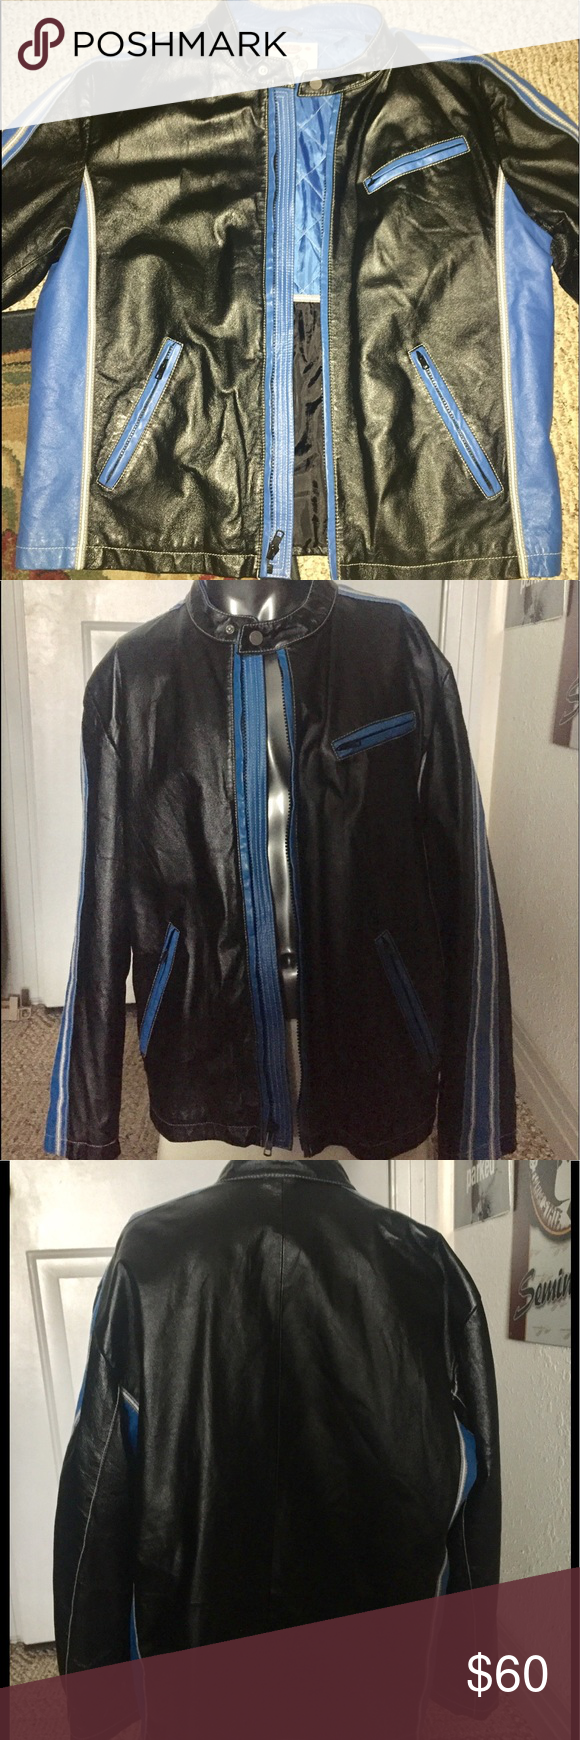 Super motorcycle jacket by Wilsons leather size XL